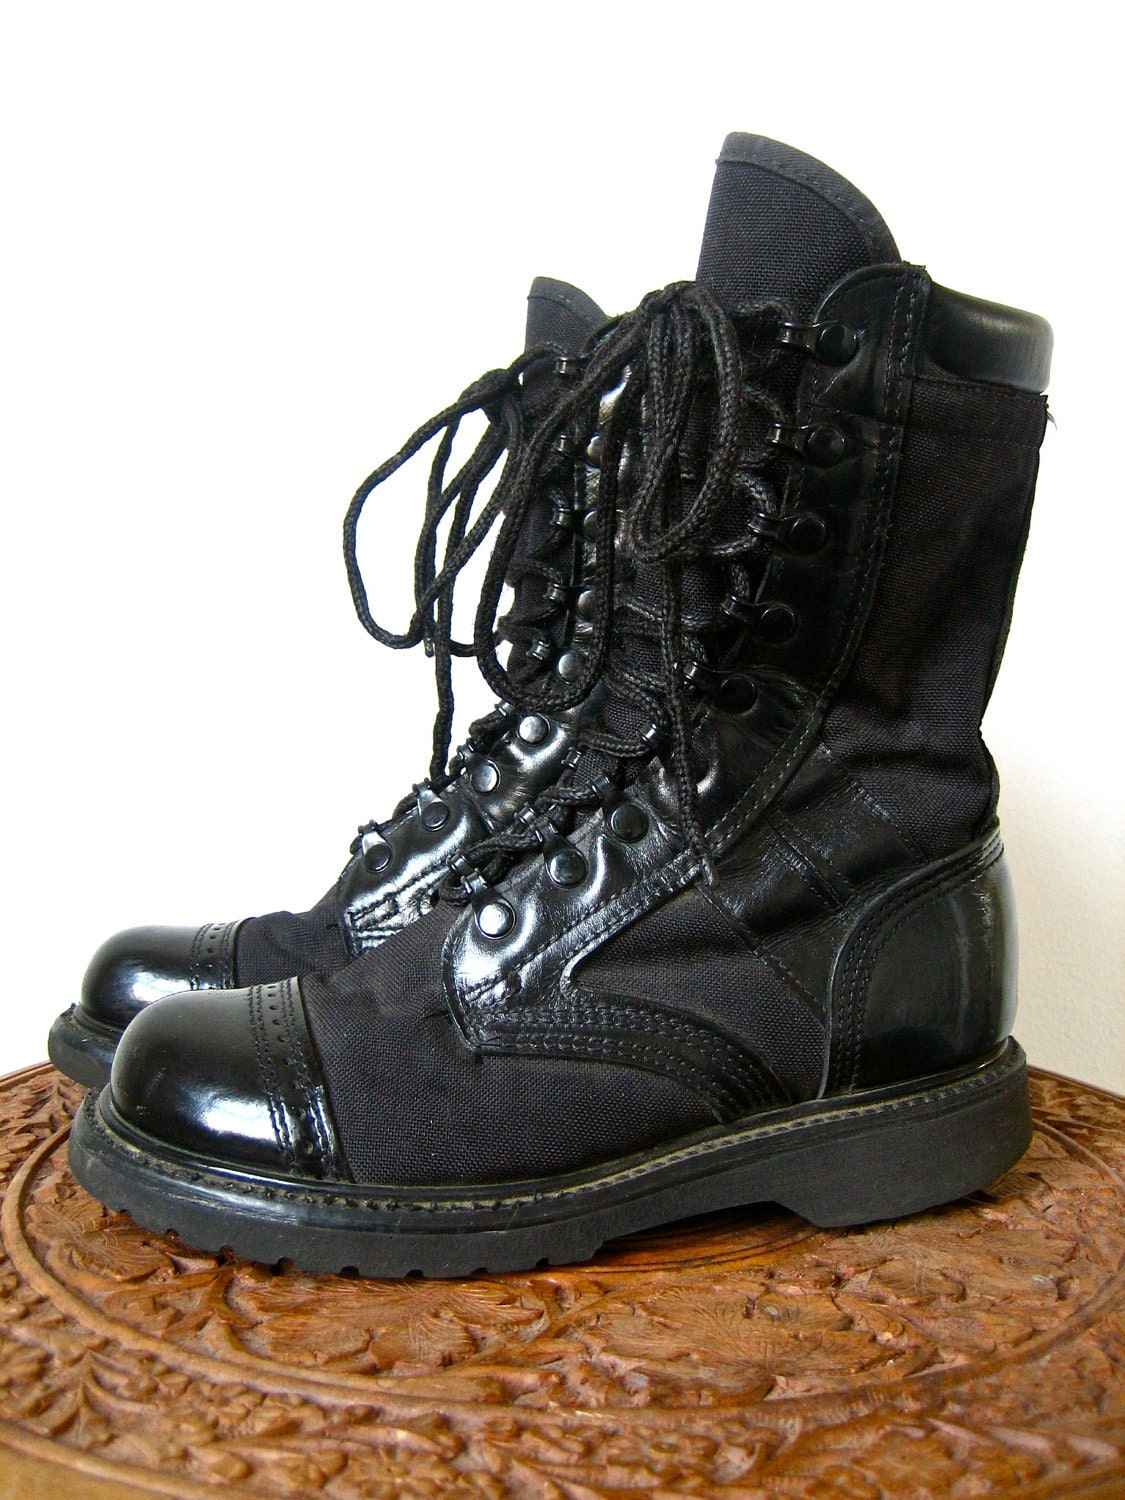 Black Military Boots Vintage 1960s Corcoran By Memoryvintage